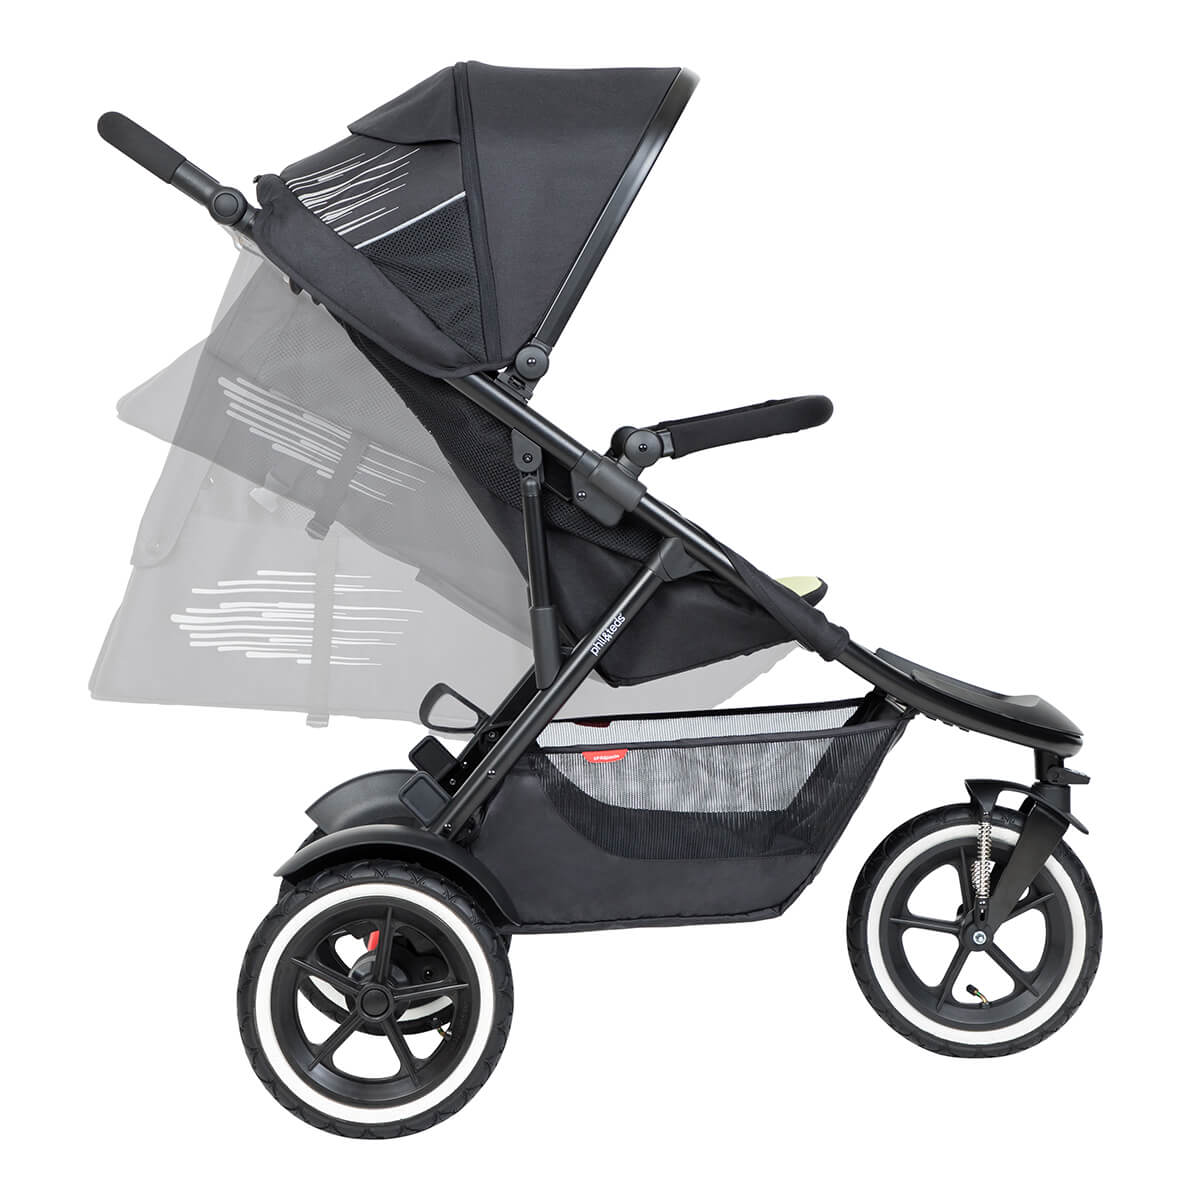 https://cdn.accentuate.io/4390323060832/19440099492024/philteds-sport-buggy-can-recline-in-multiple-angles-including-full-recline-for-newborn-baby-v1626488623373.jpg?1200x1200